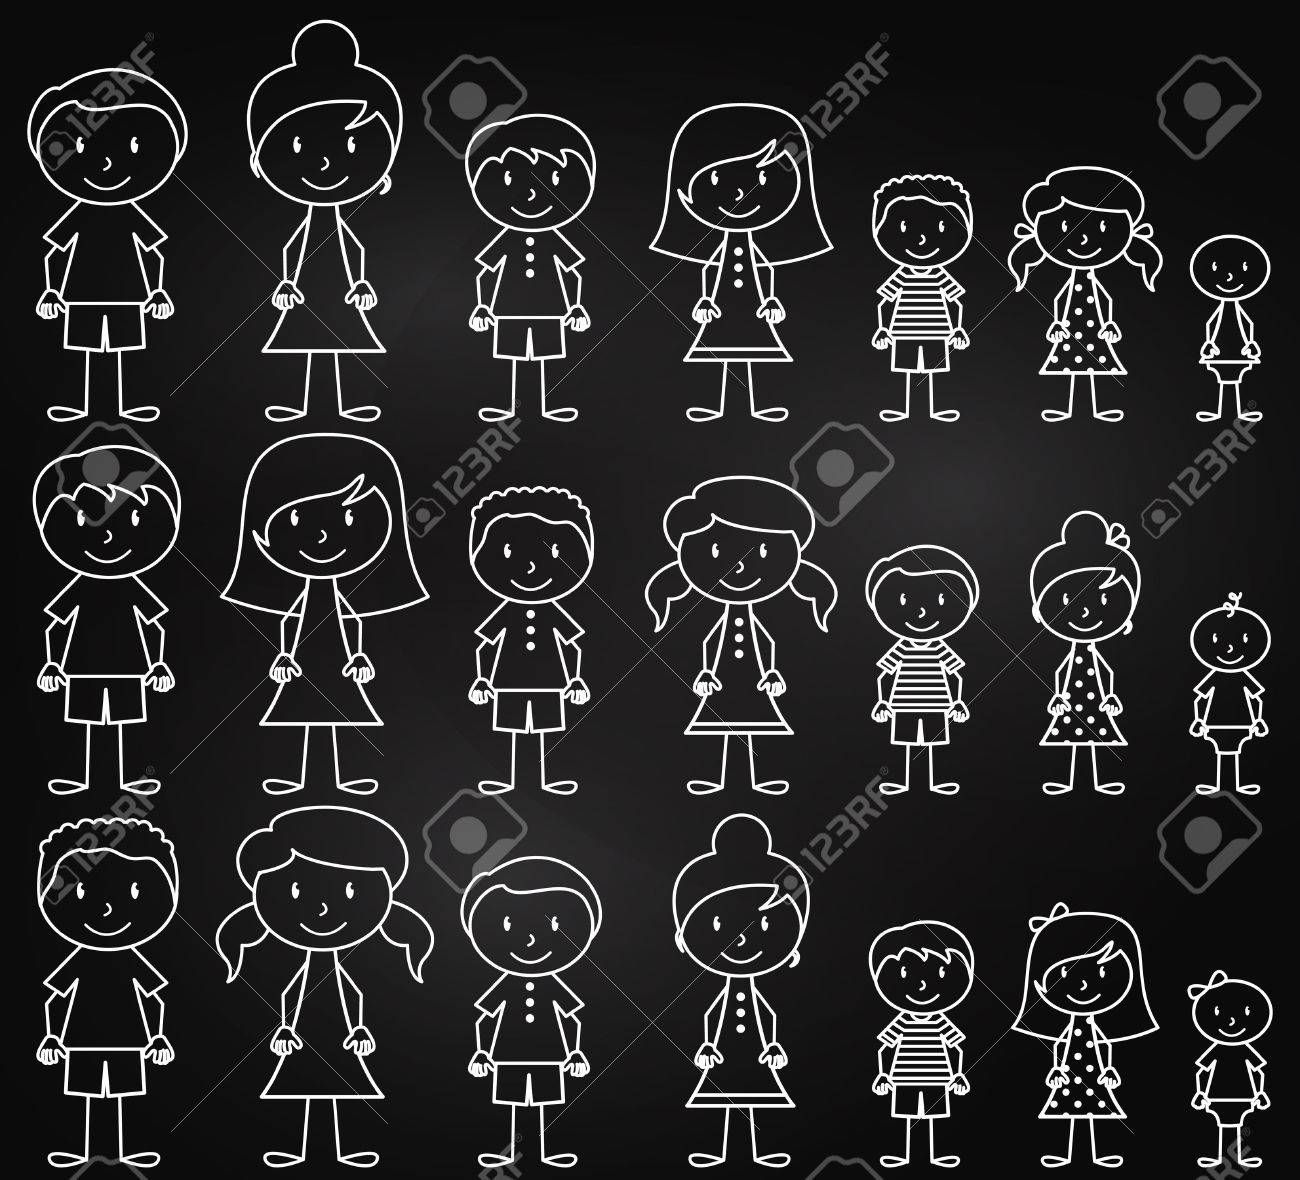 Set of Cute and Diverse Chalkboard Stick People in Vector Format - 39636811